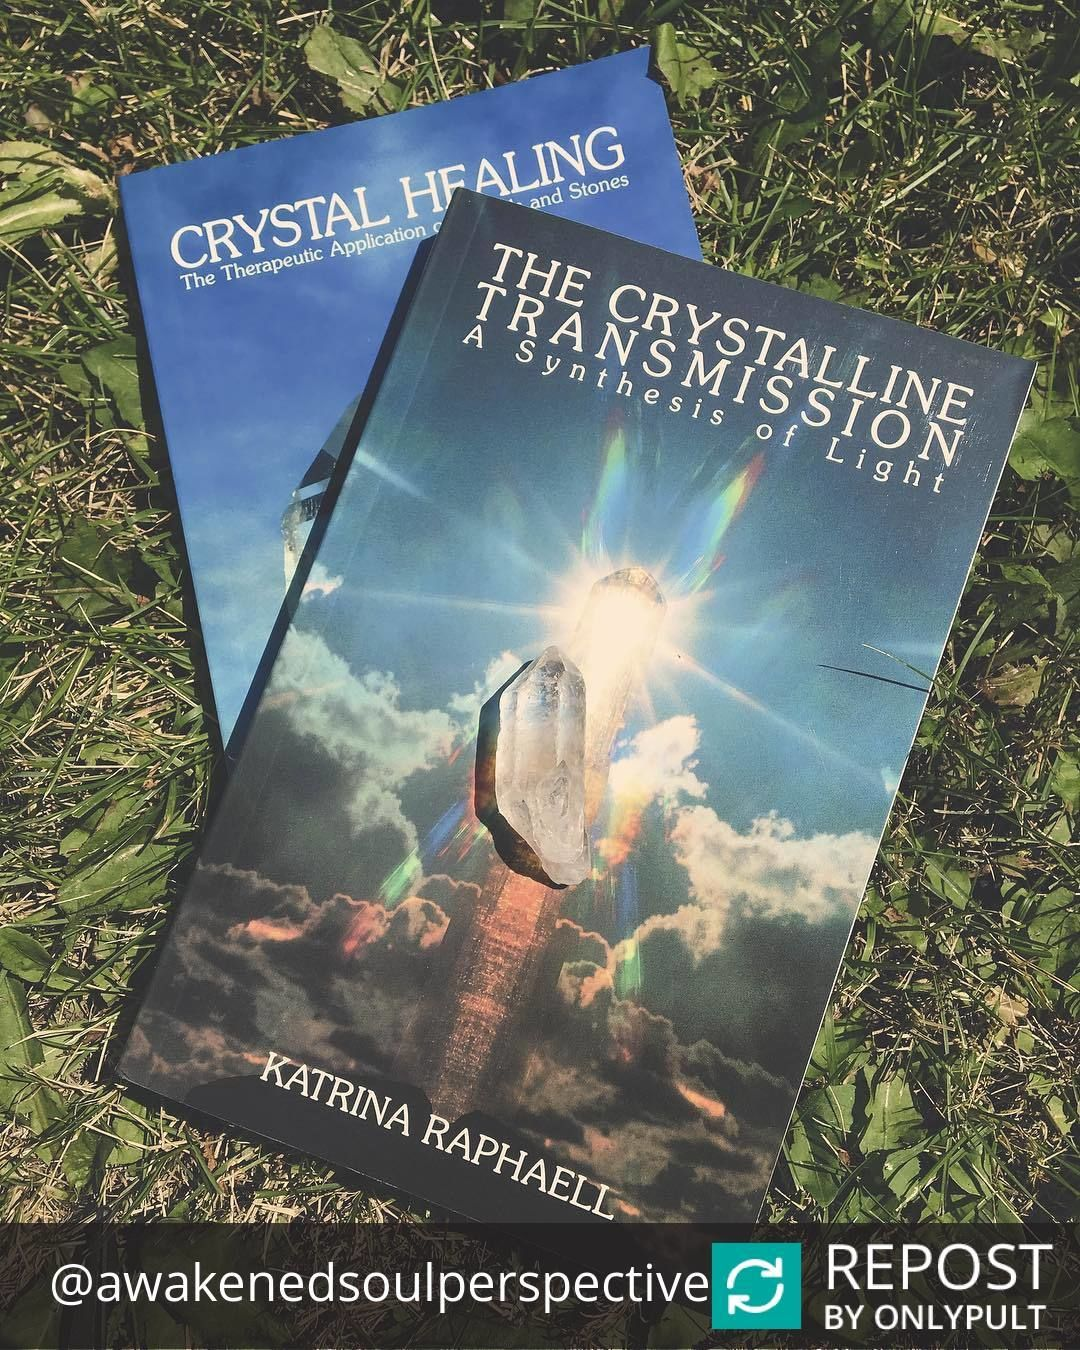 A little Advanced Crystal Master Course required reading